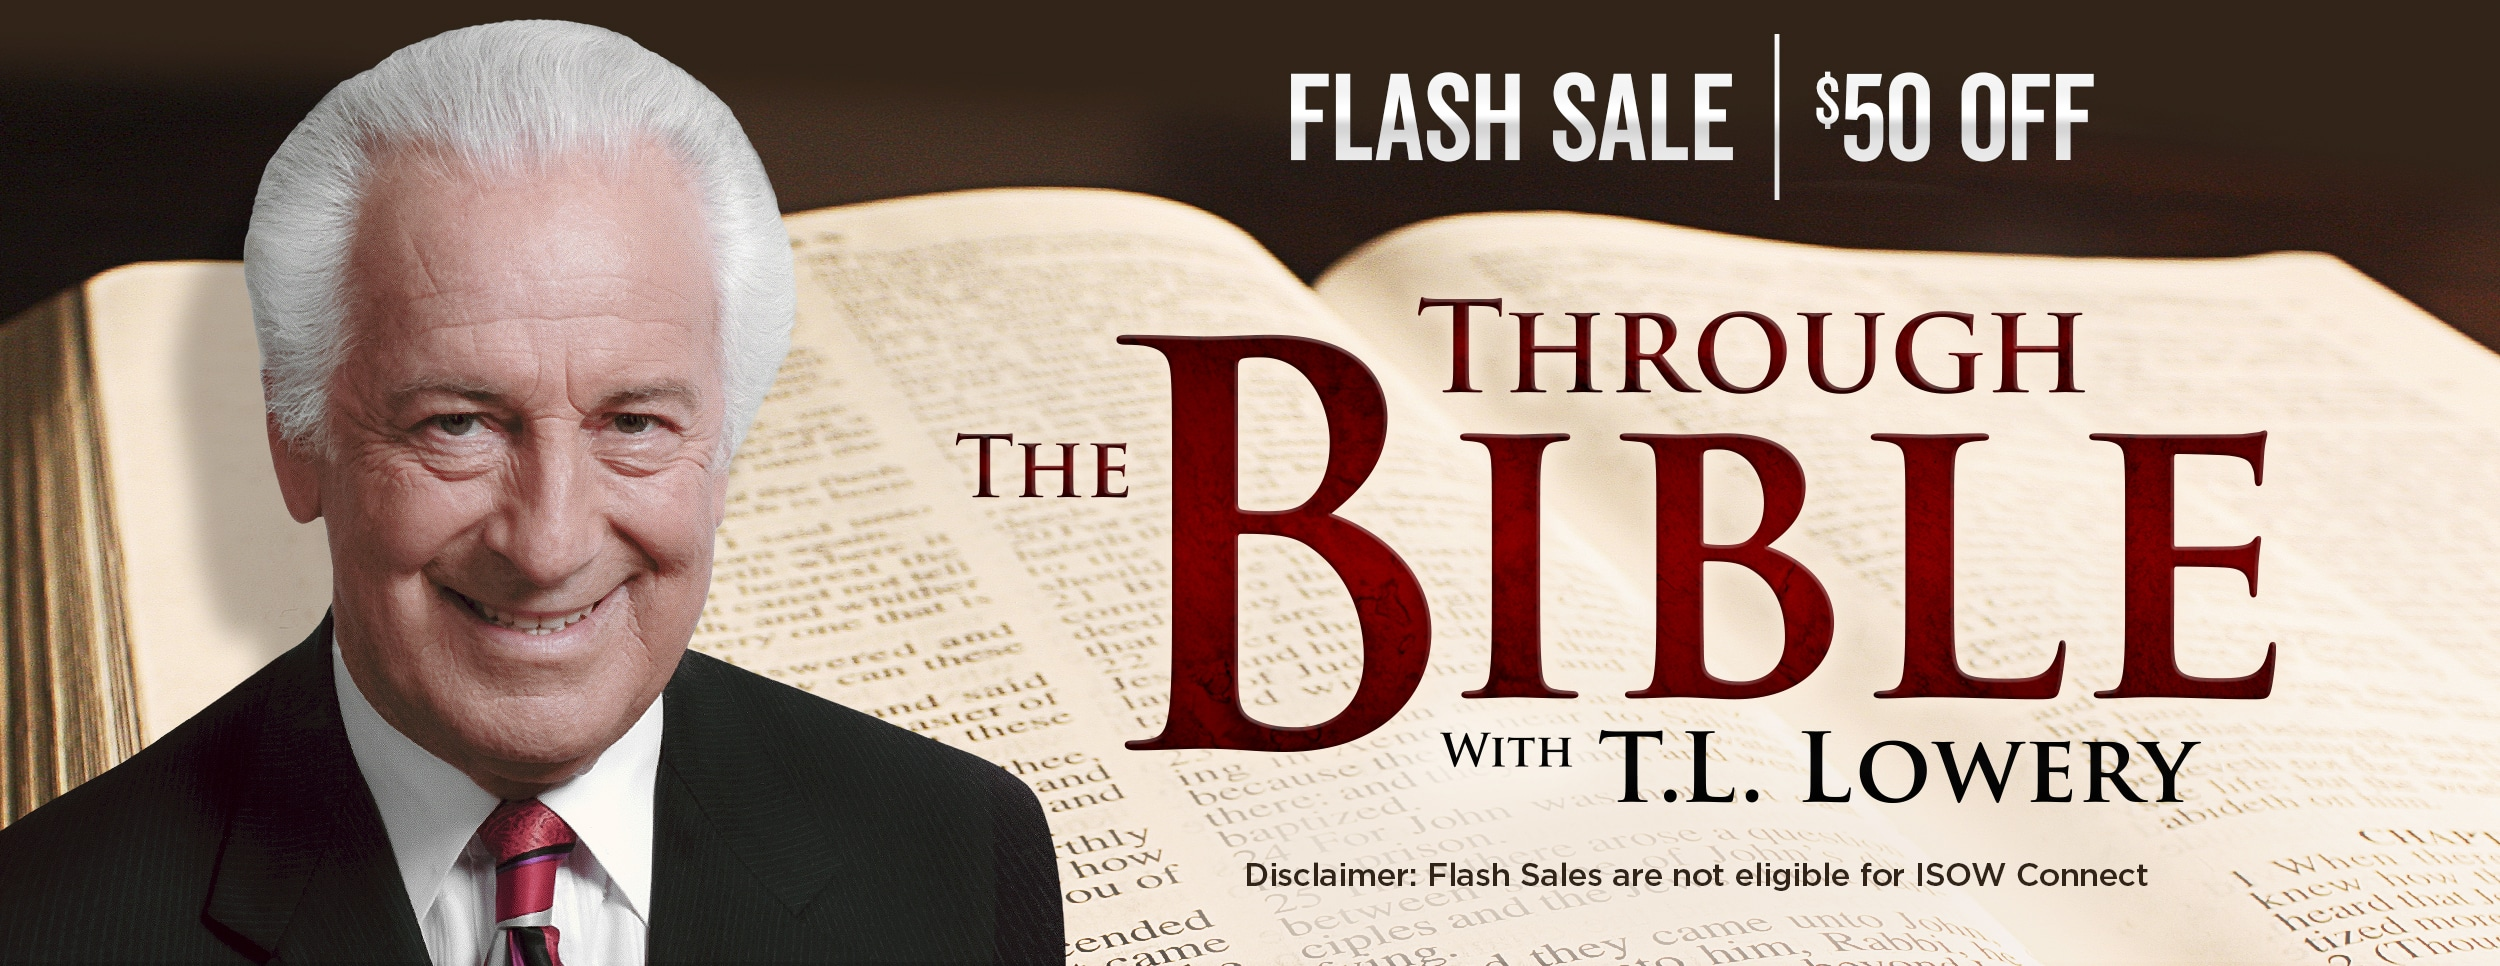 Through the Bible with T.L. Lowery Bundle Flash Sale – Website Banner 1